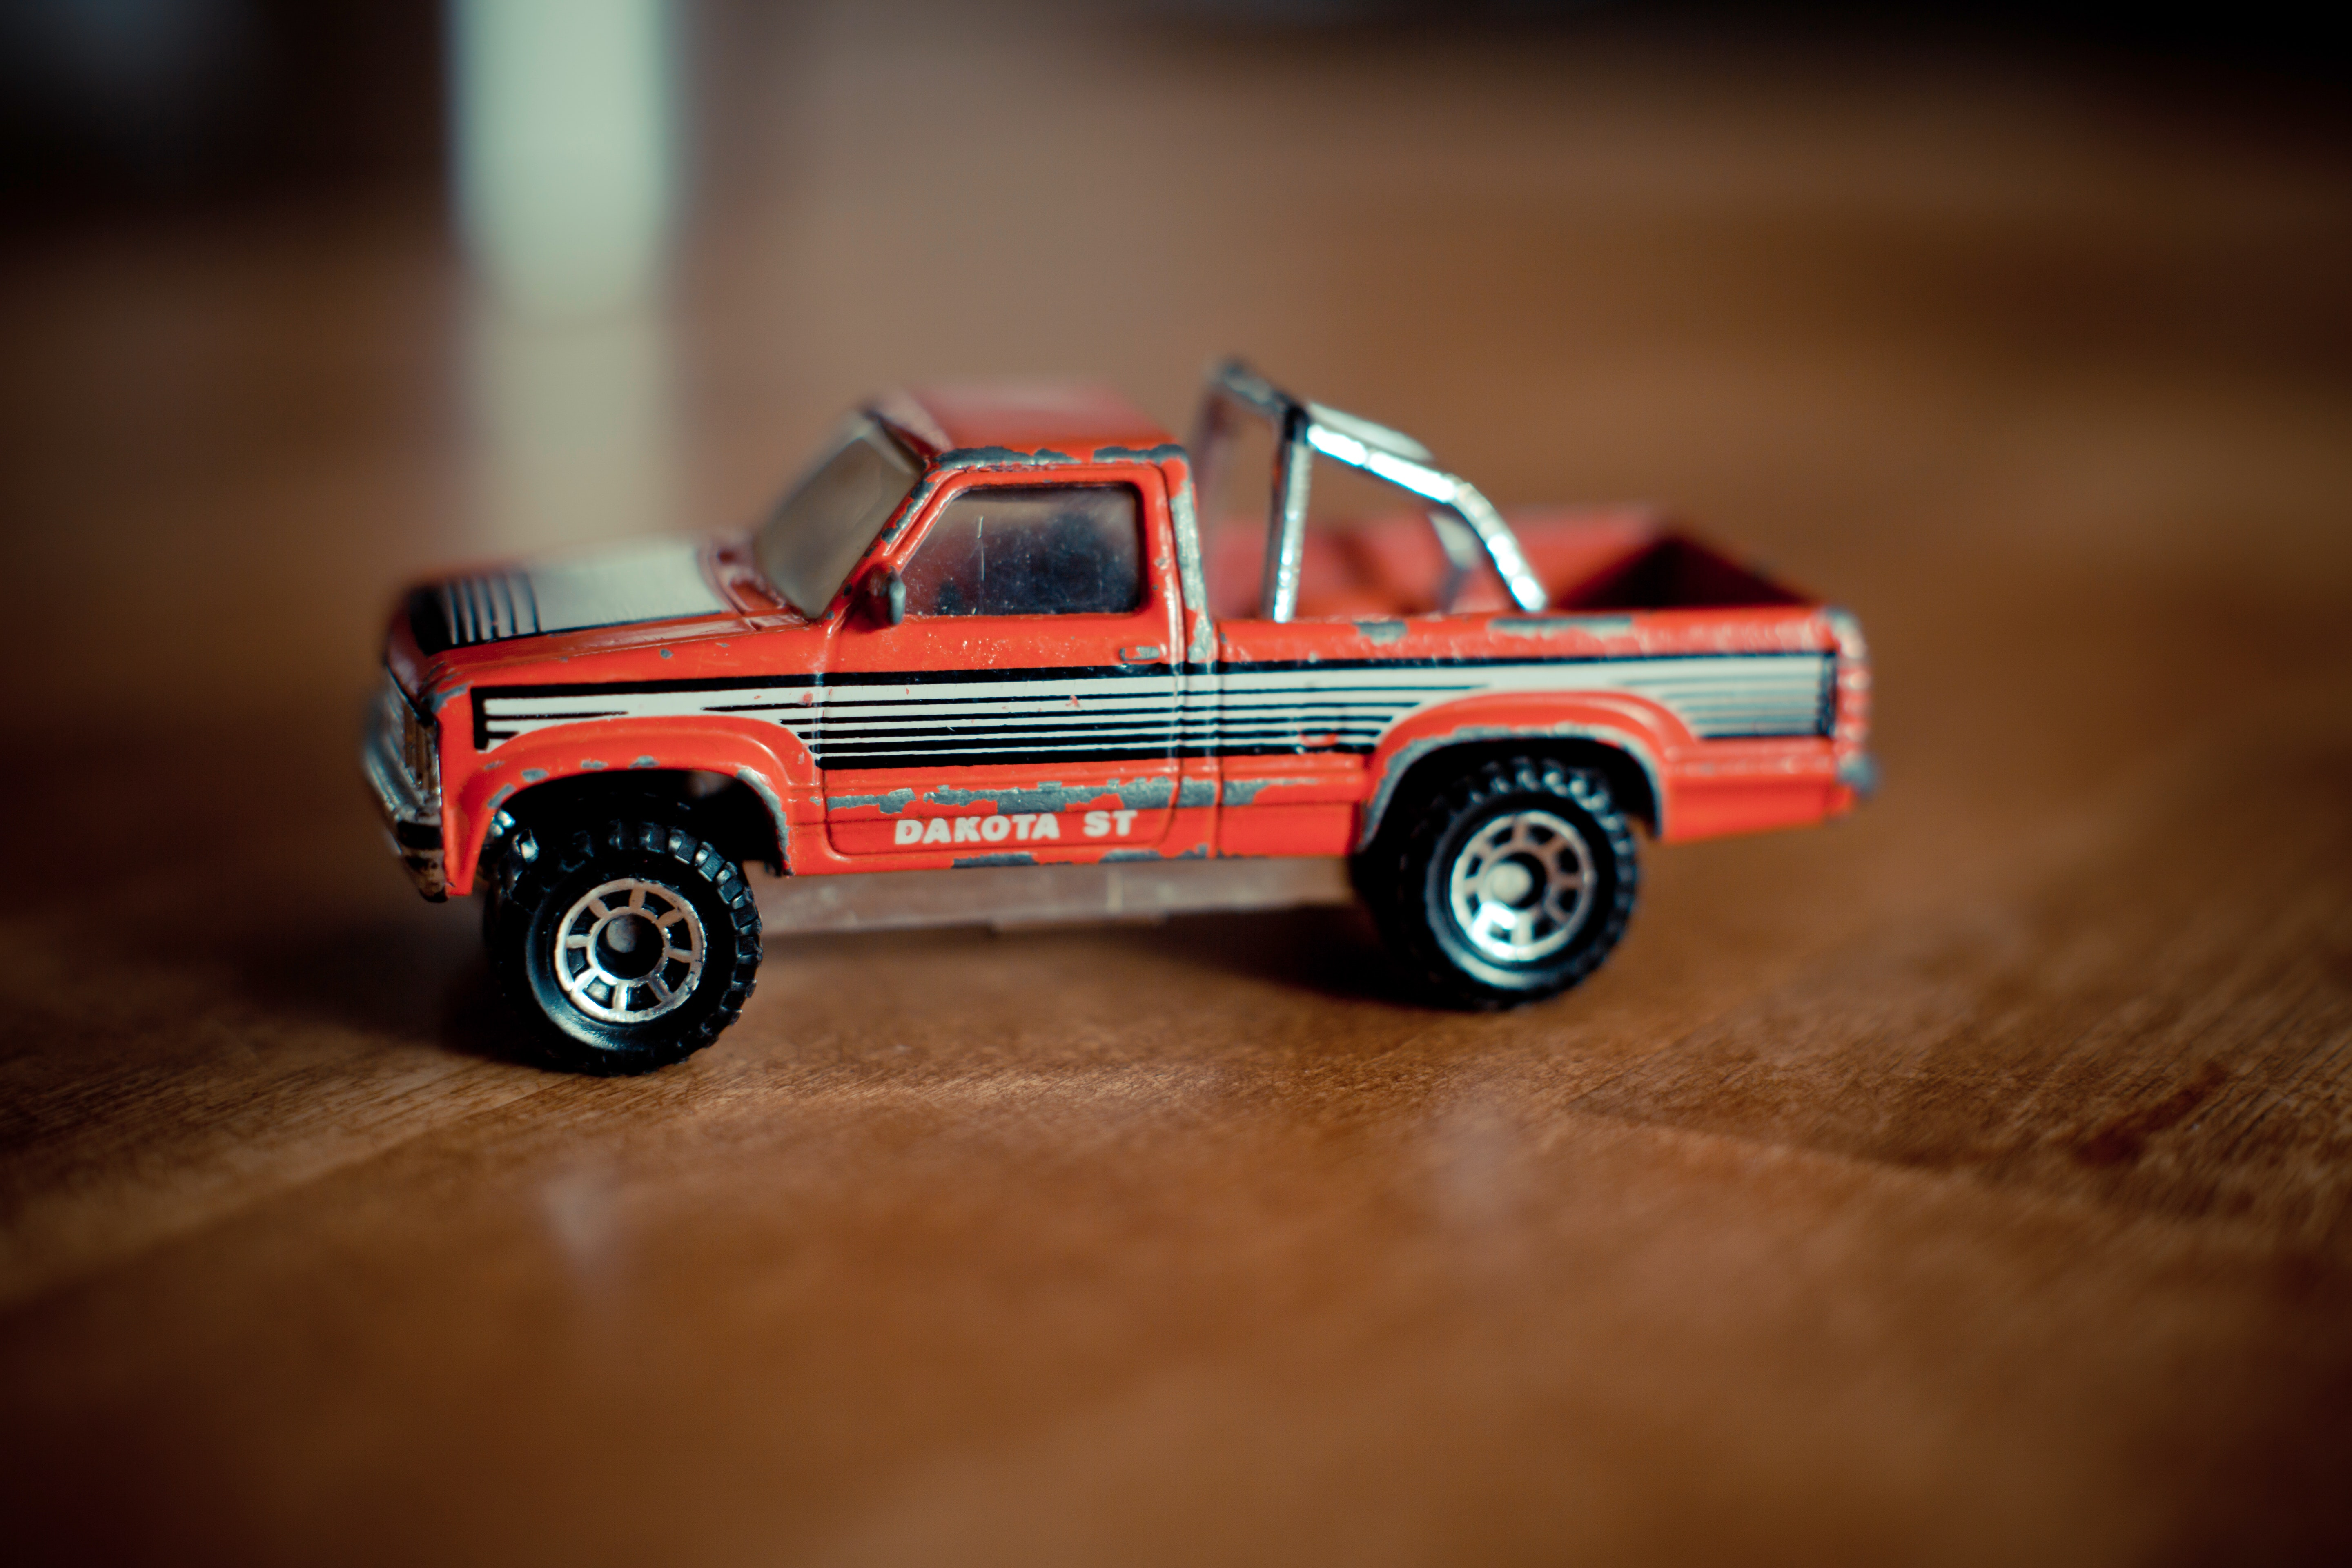 Scratched toy truck